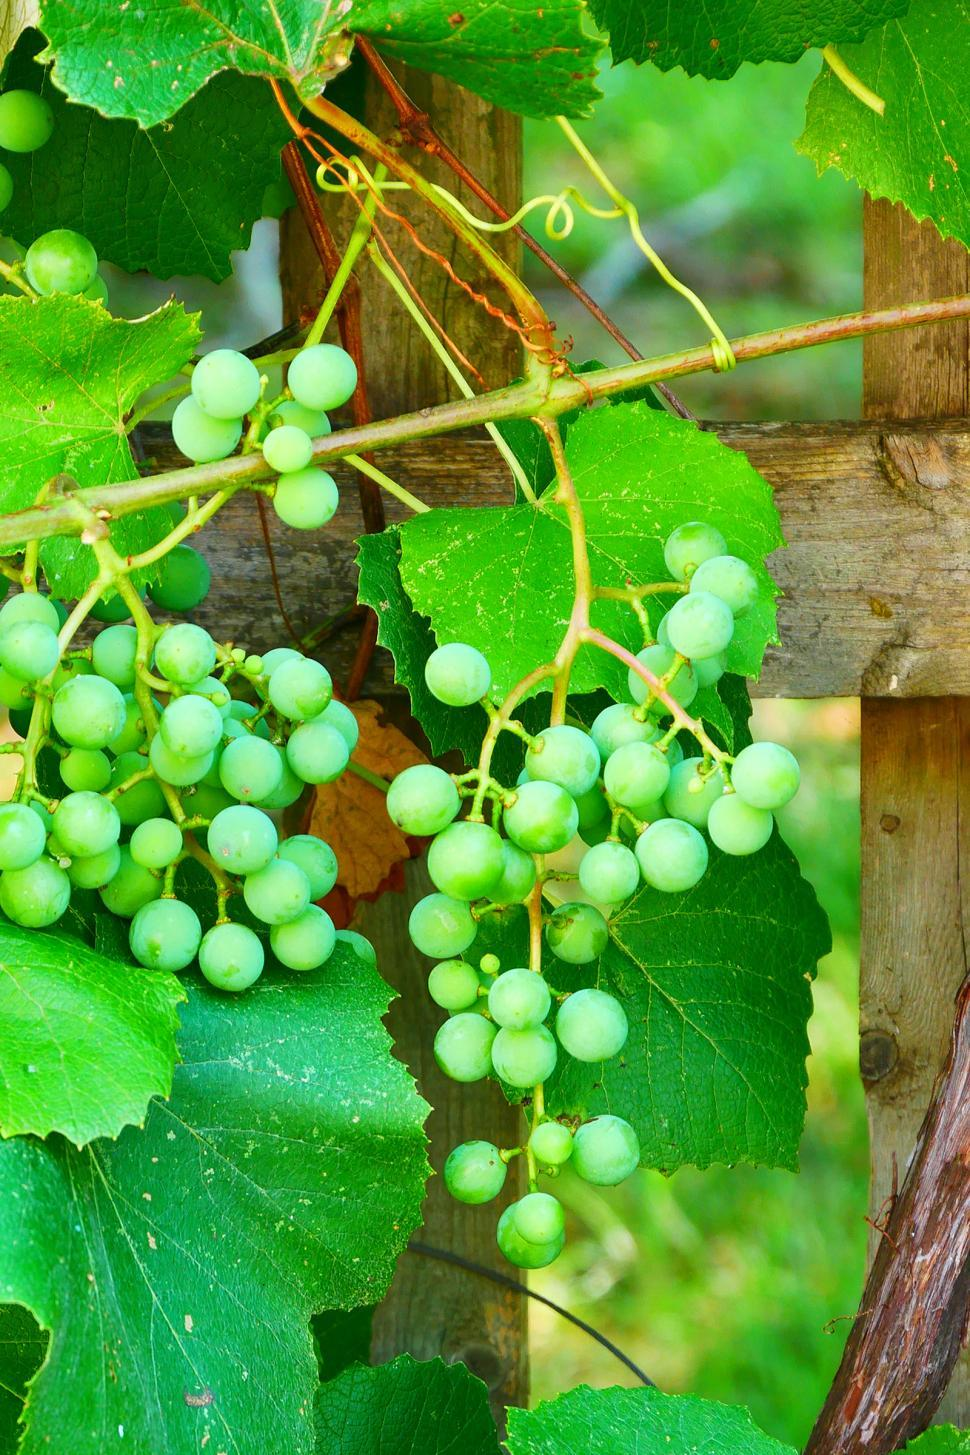 Download Free Stock HD Photo of Bunch Of Grapes on Wooden Trellis Online